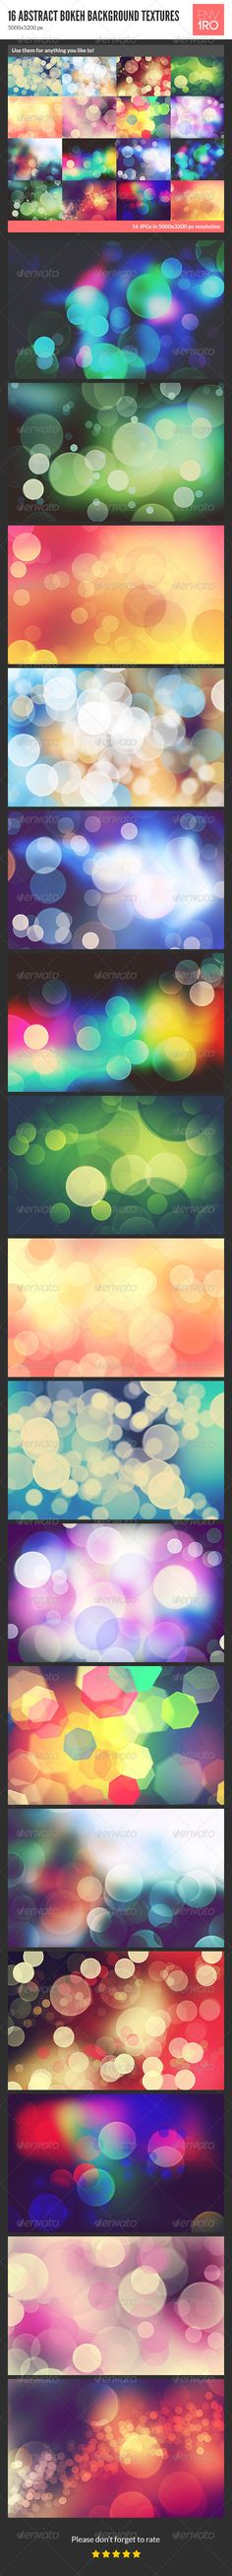 16 Abstract Bokeh Background Textures by env1ro 16 different abstract bokeh backgrounds / textures which you can use for anything you like to! Size: 50003200 px Color mode: RGB